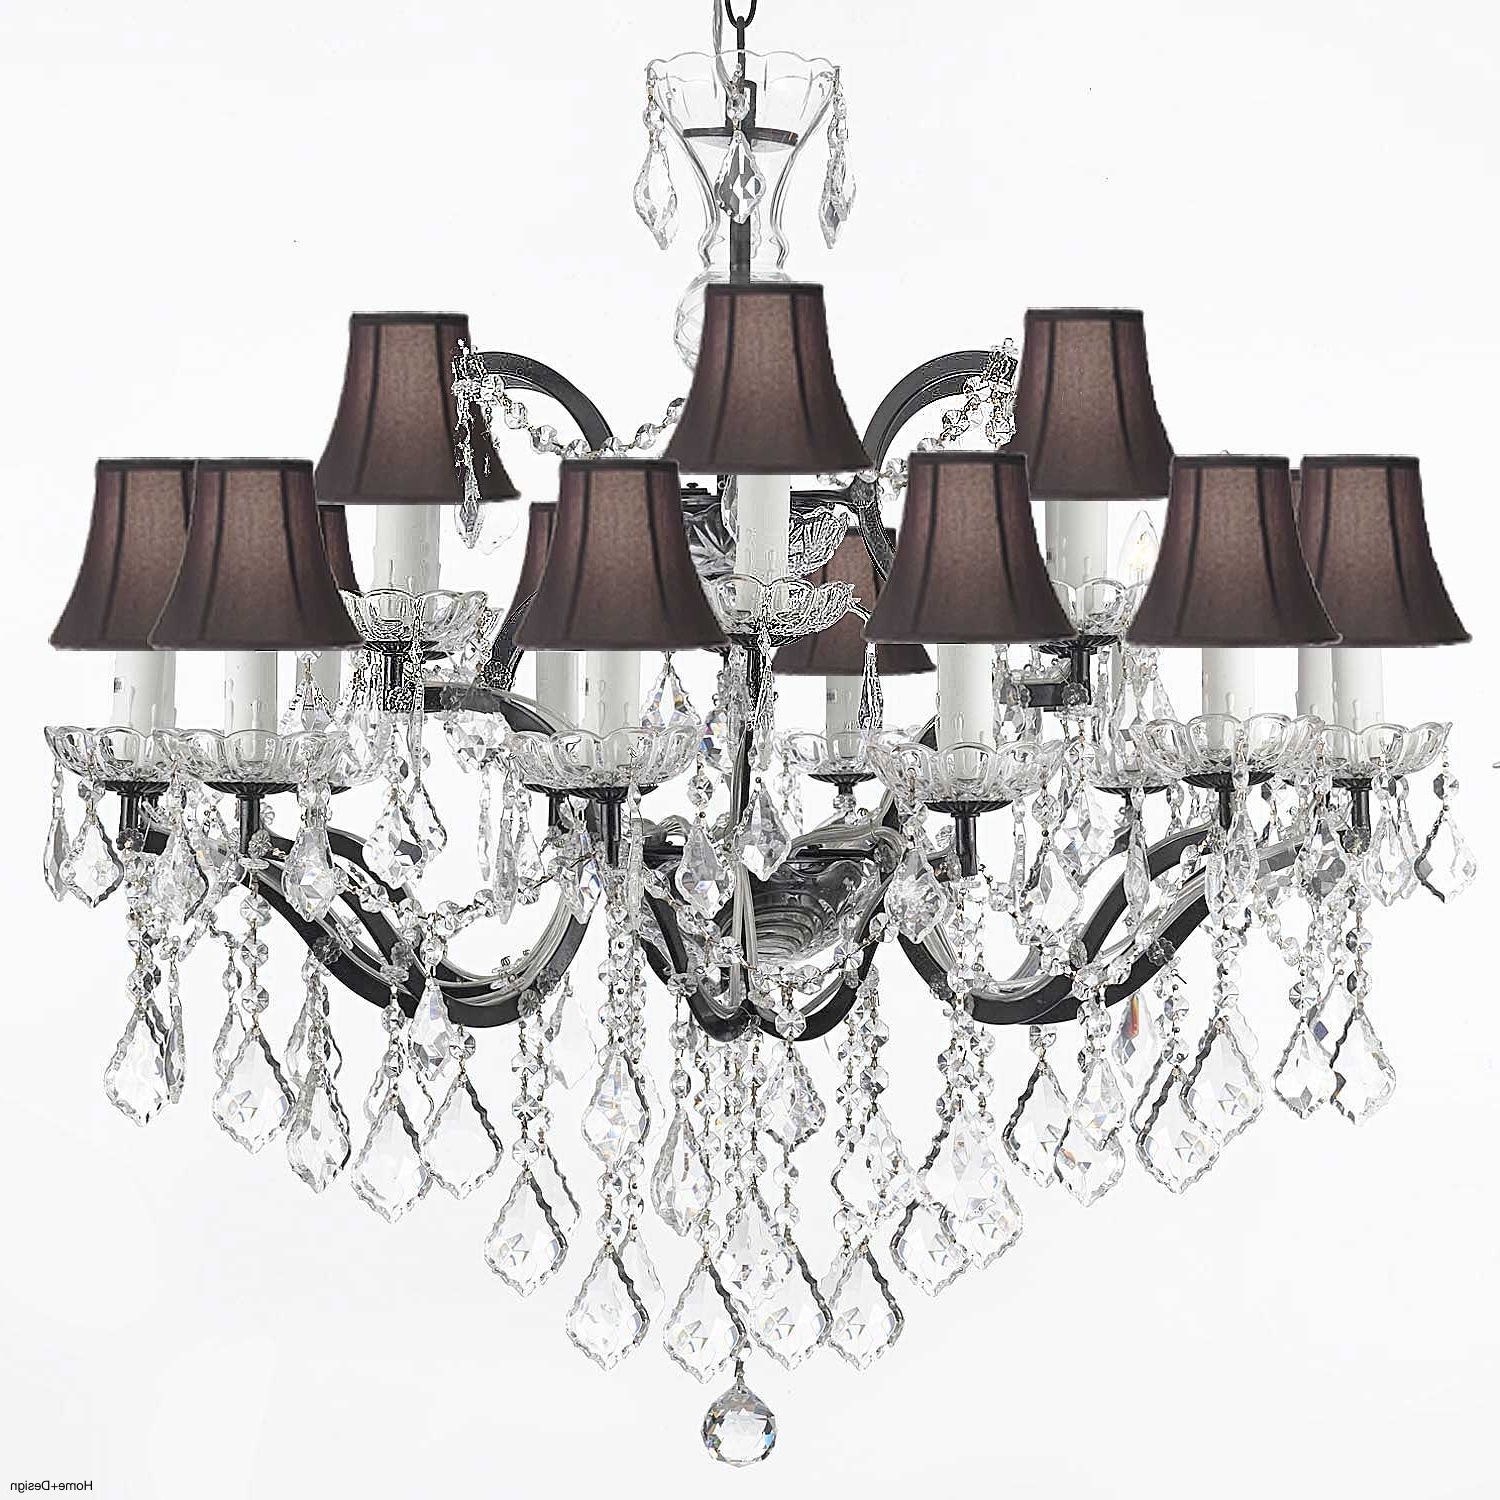 2017 Clip On Lamp Shades For Chandeliers Uk – Chandelier Designs With Clip On Chandeliers (View 7 of 15)